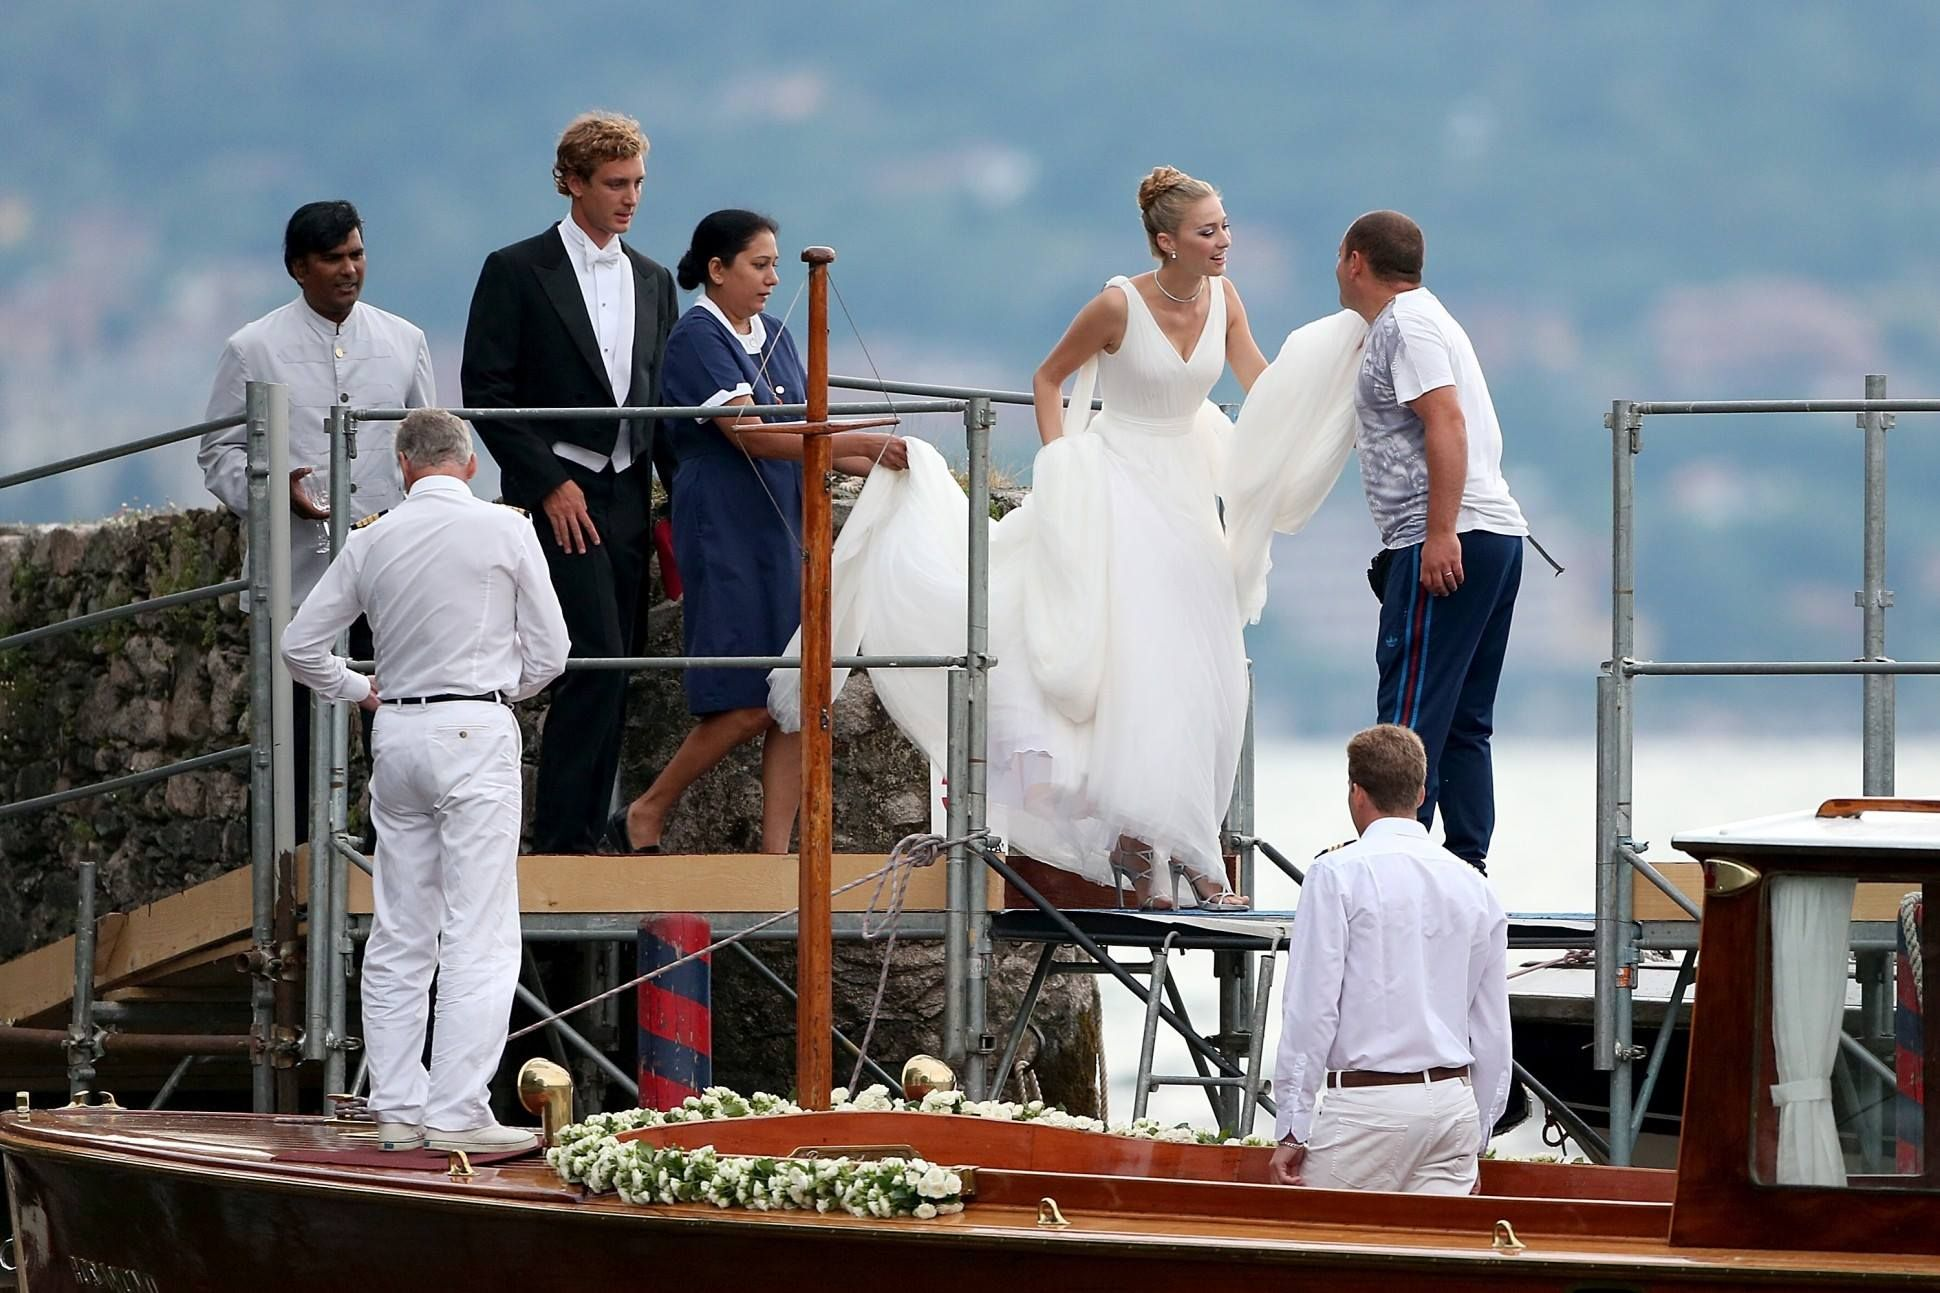 Pierre and Beatrice Casiraghi Religious Wedding Ceremony in Stresa on the Lake Maggiore in northern Italy on August 1, 2015